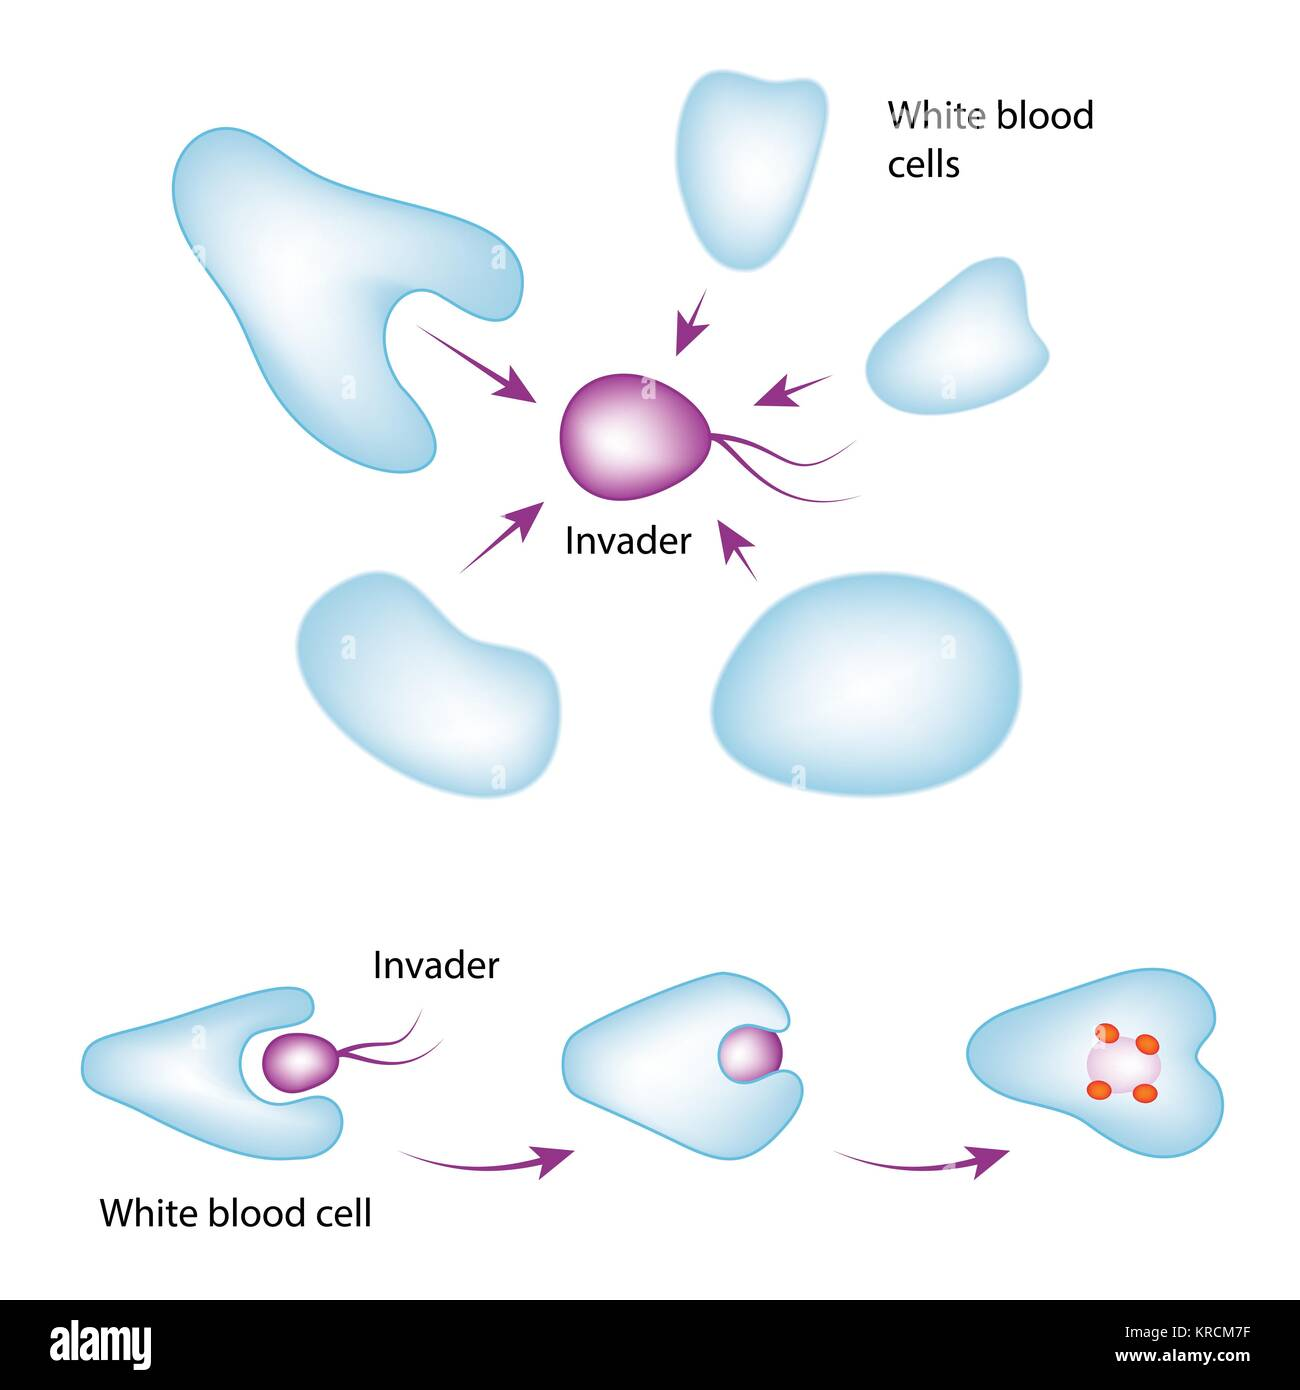 hight resolution of basic mechanism of the immune system white blood cell eating bacteria vector medical illustration